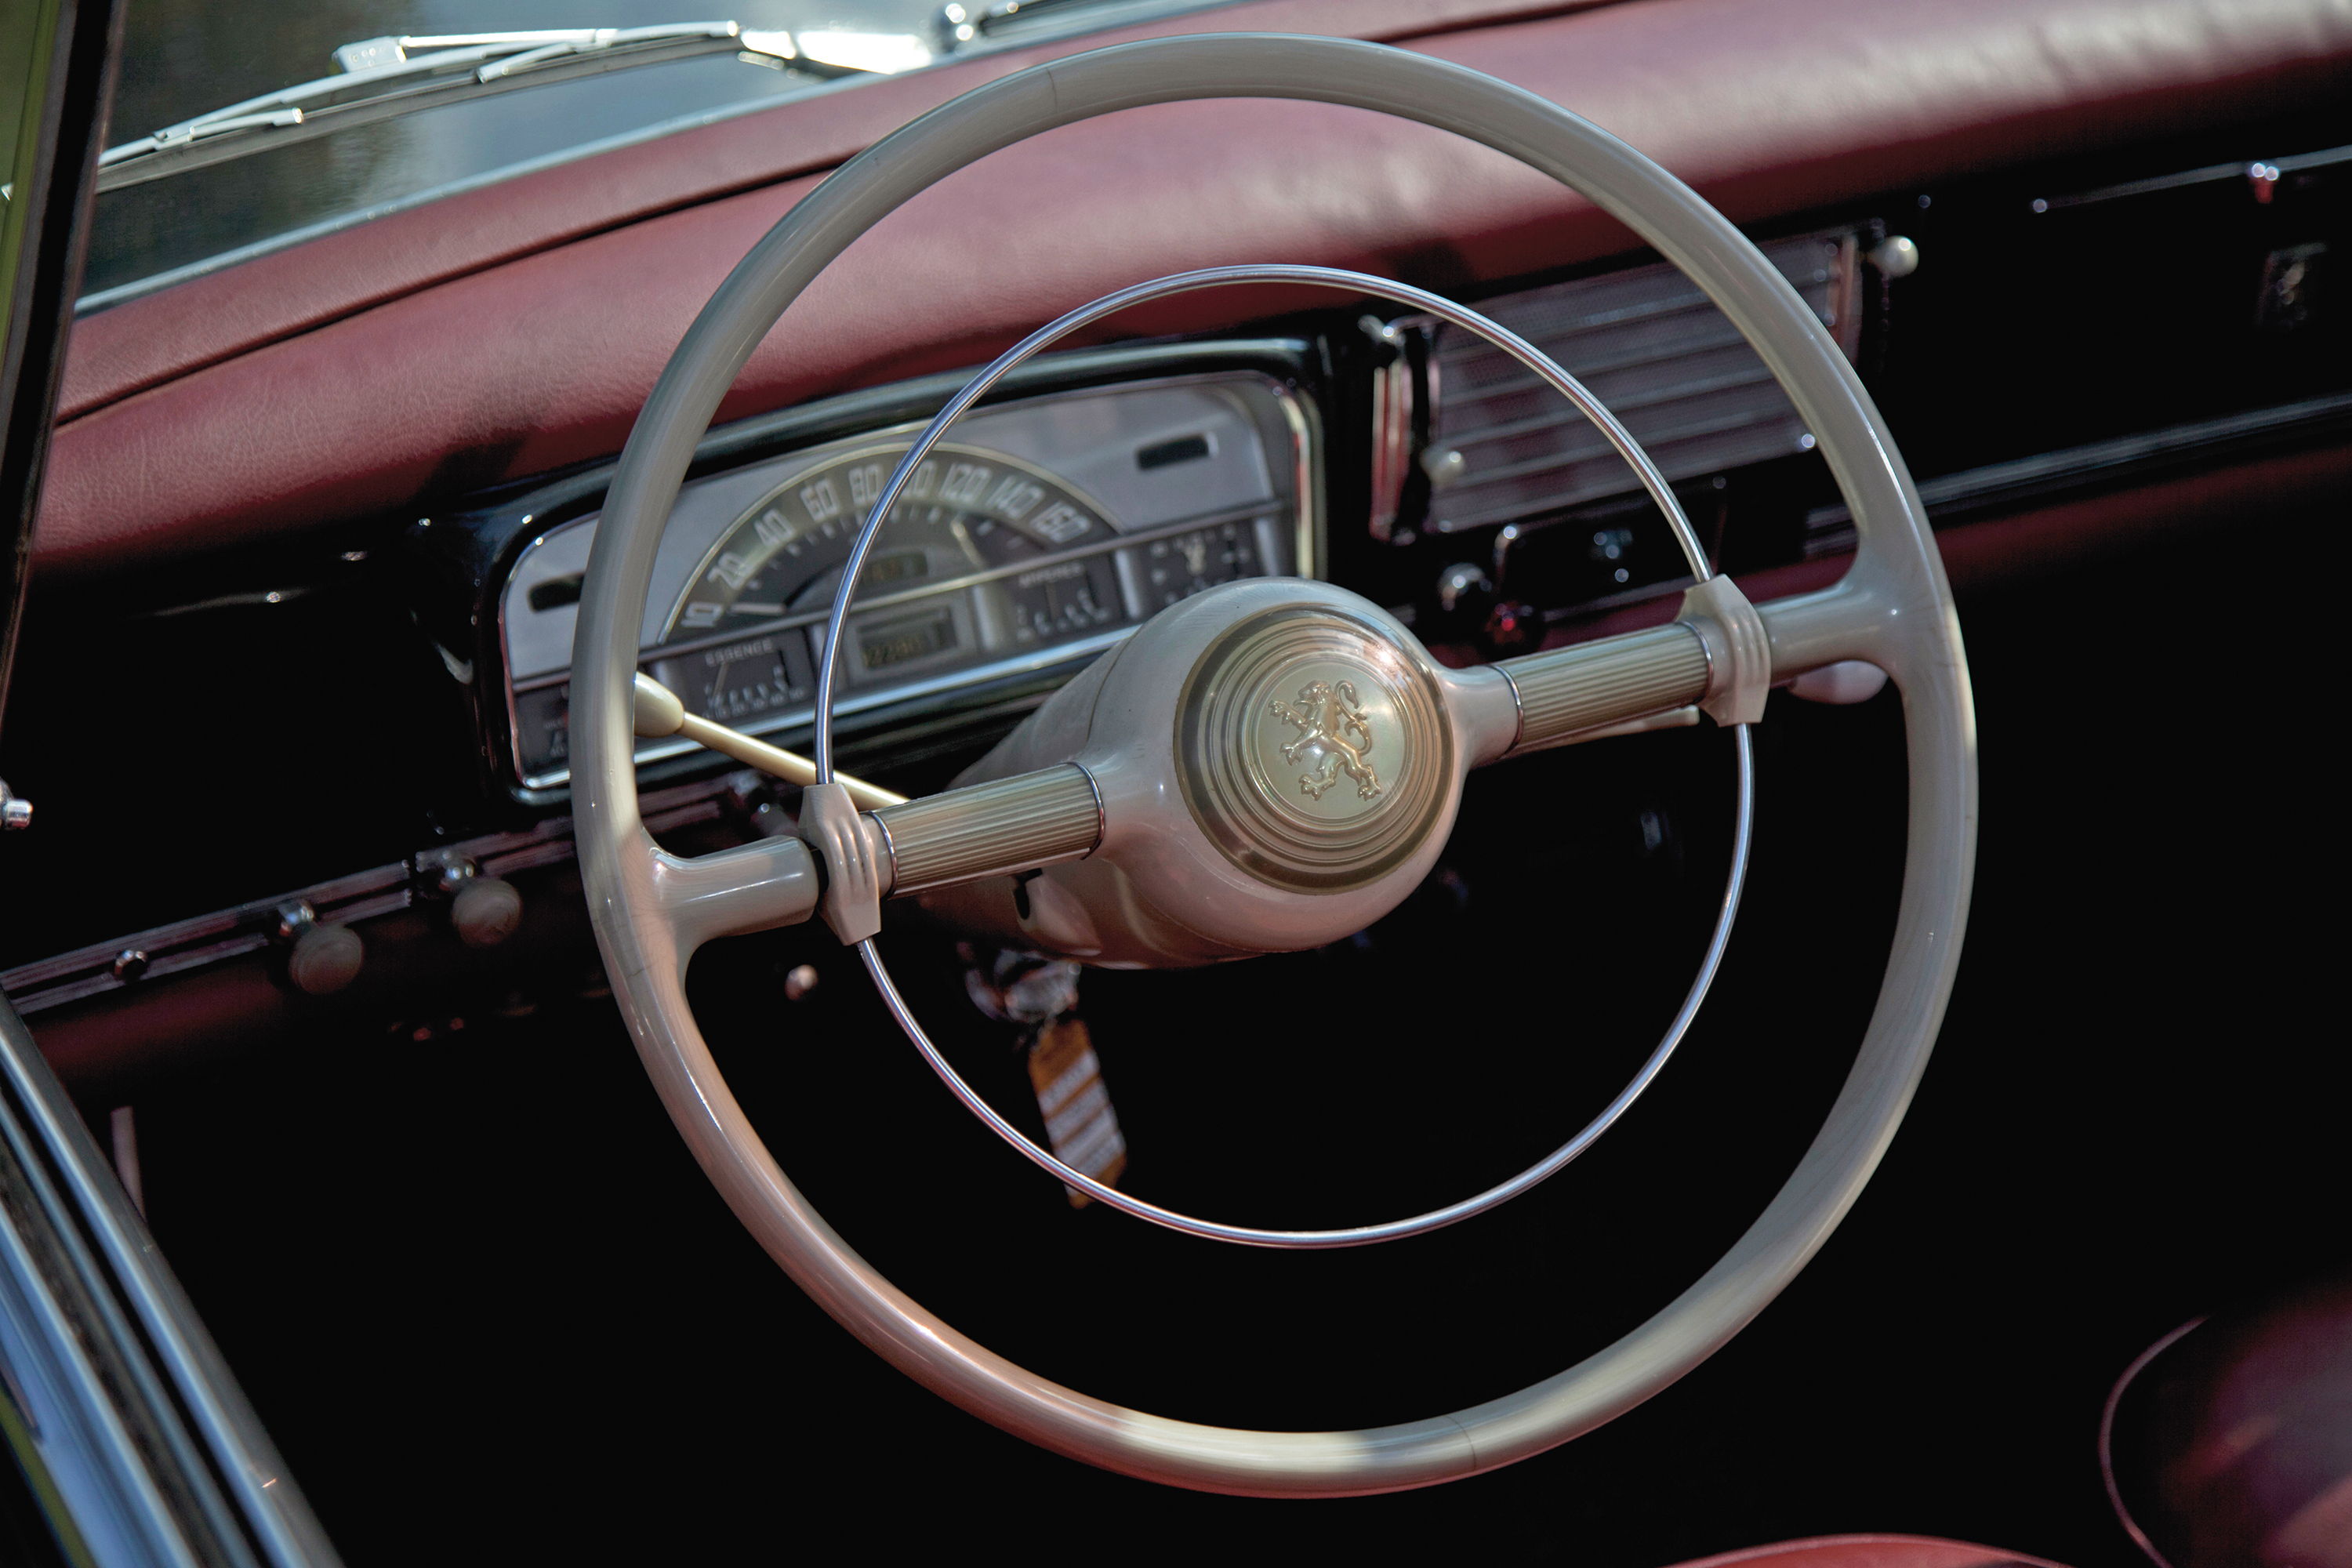 Atemberaubend Peugeot 403 Cabriolet specificaties en info - Classic Cars @XG_58